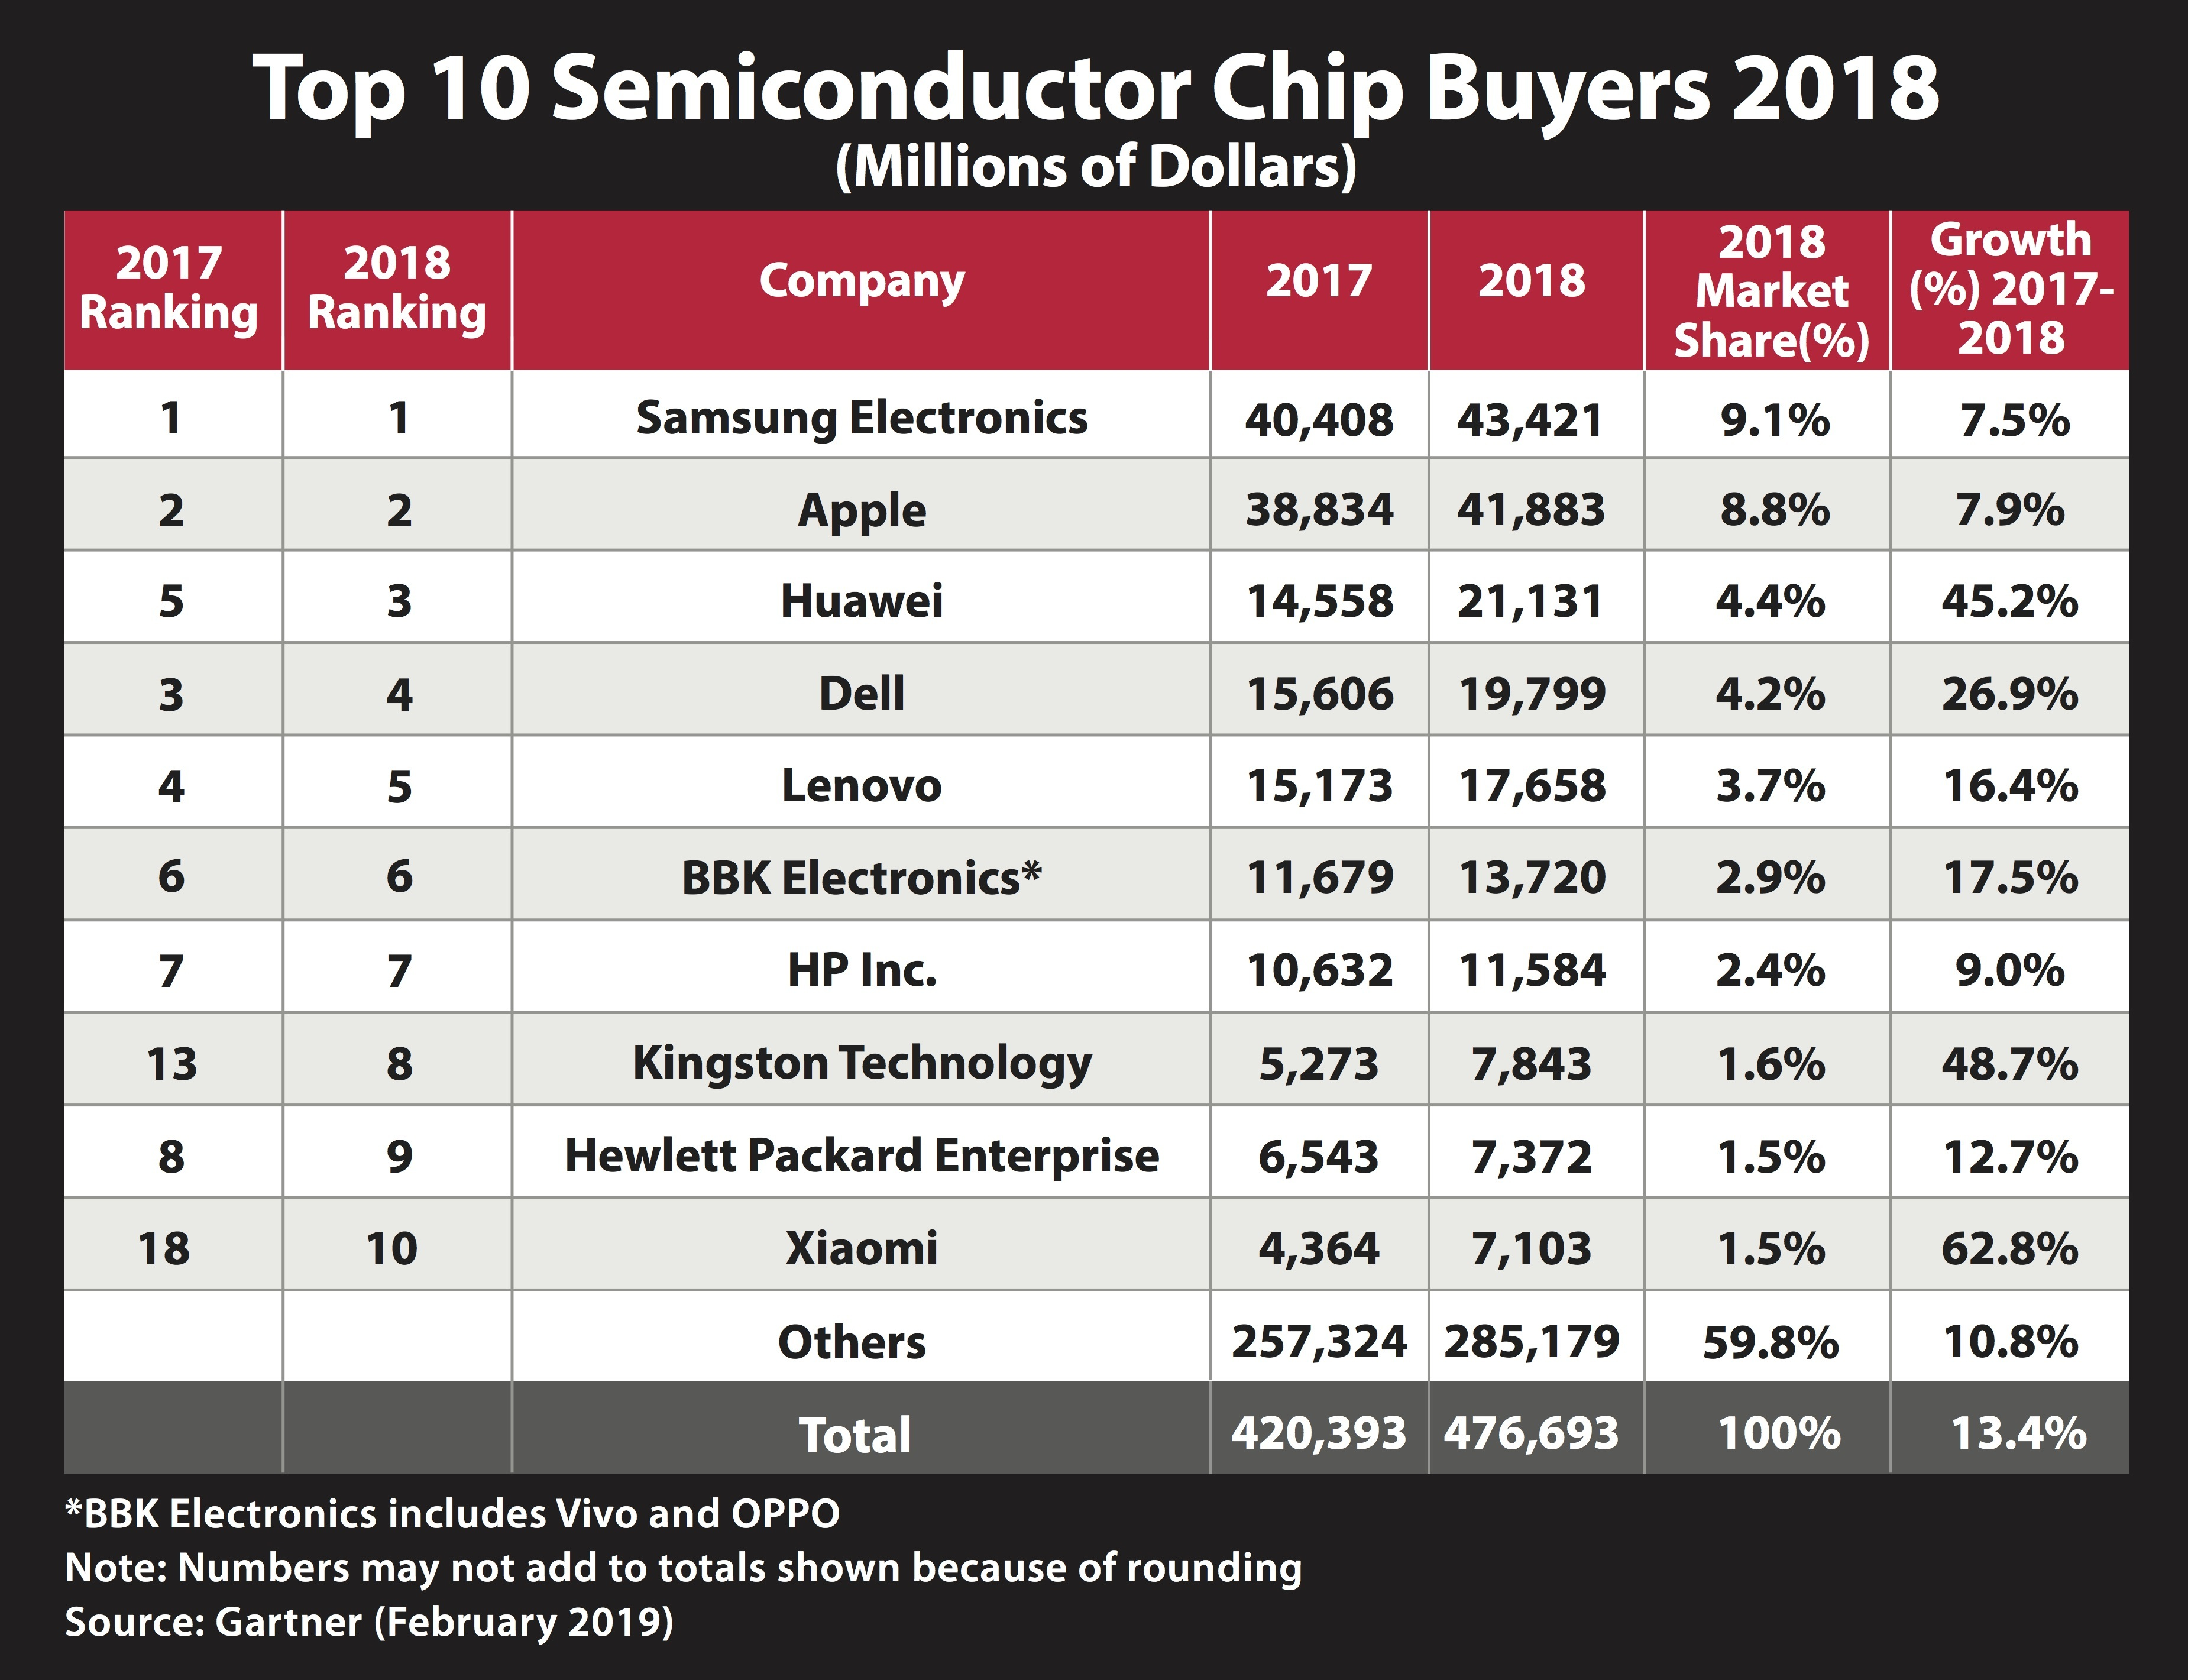 Kingston Technology Among Top 10 Semiconductor Chip Buyers